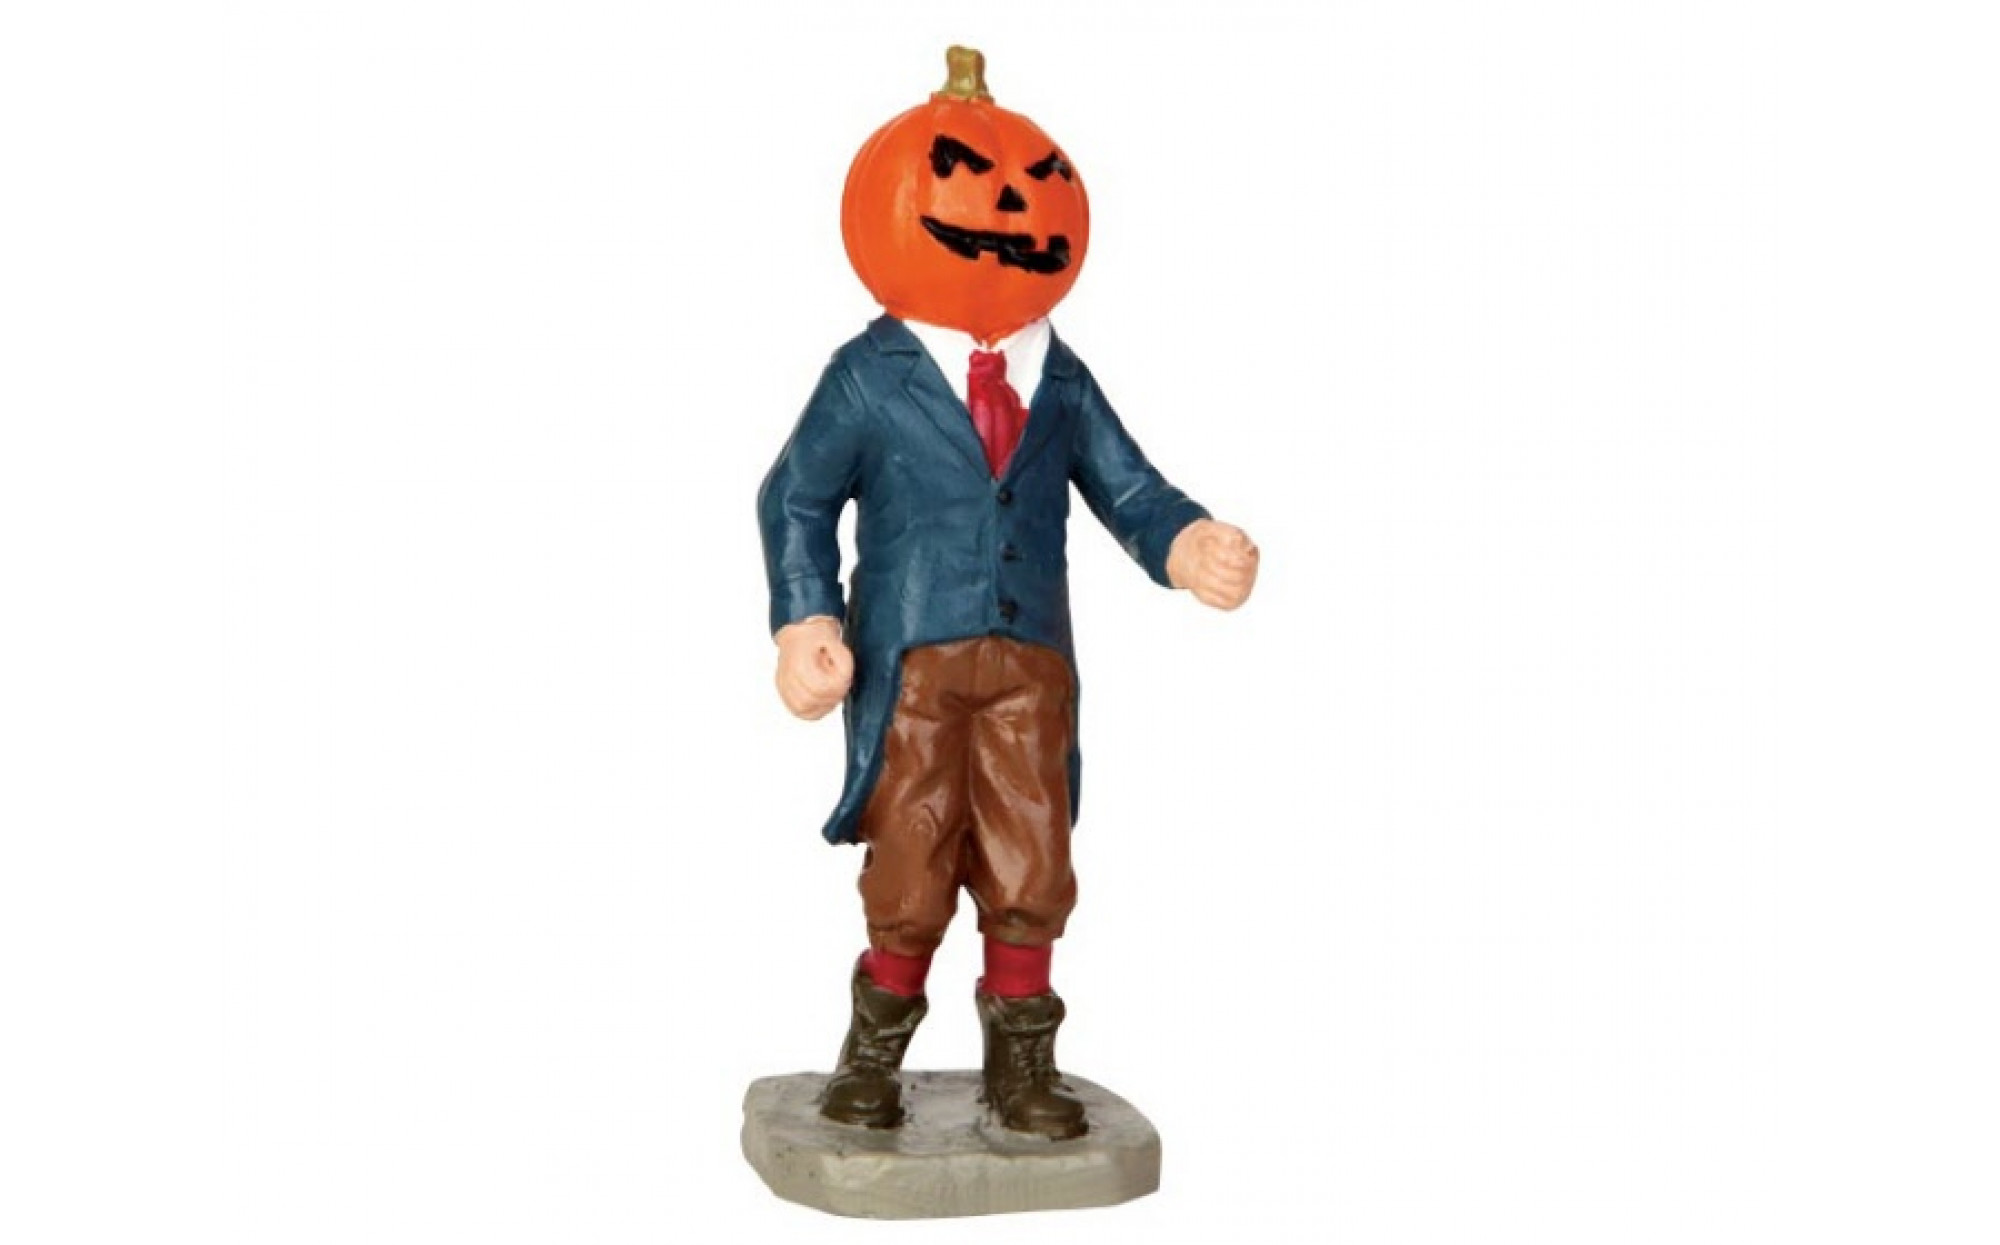 Pumpkin Head Figure – Sand Tray Therapy